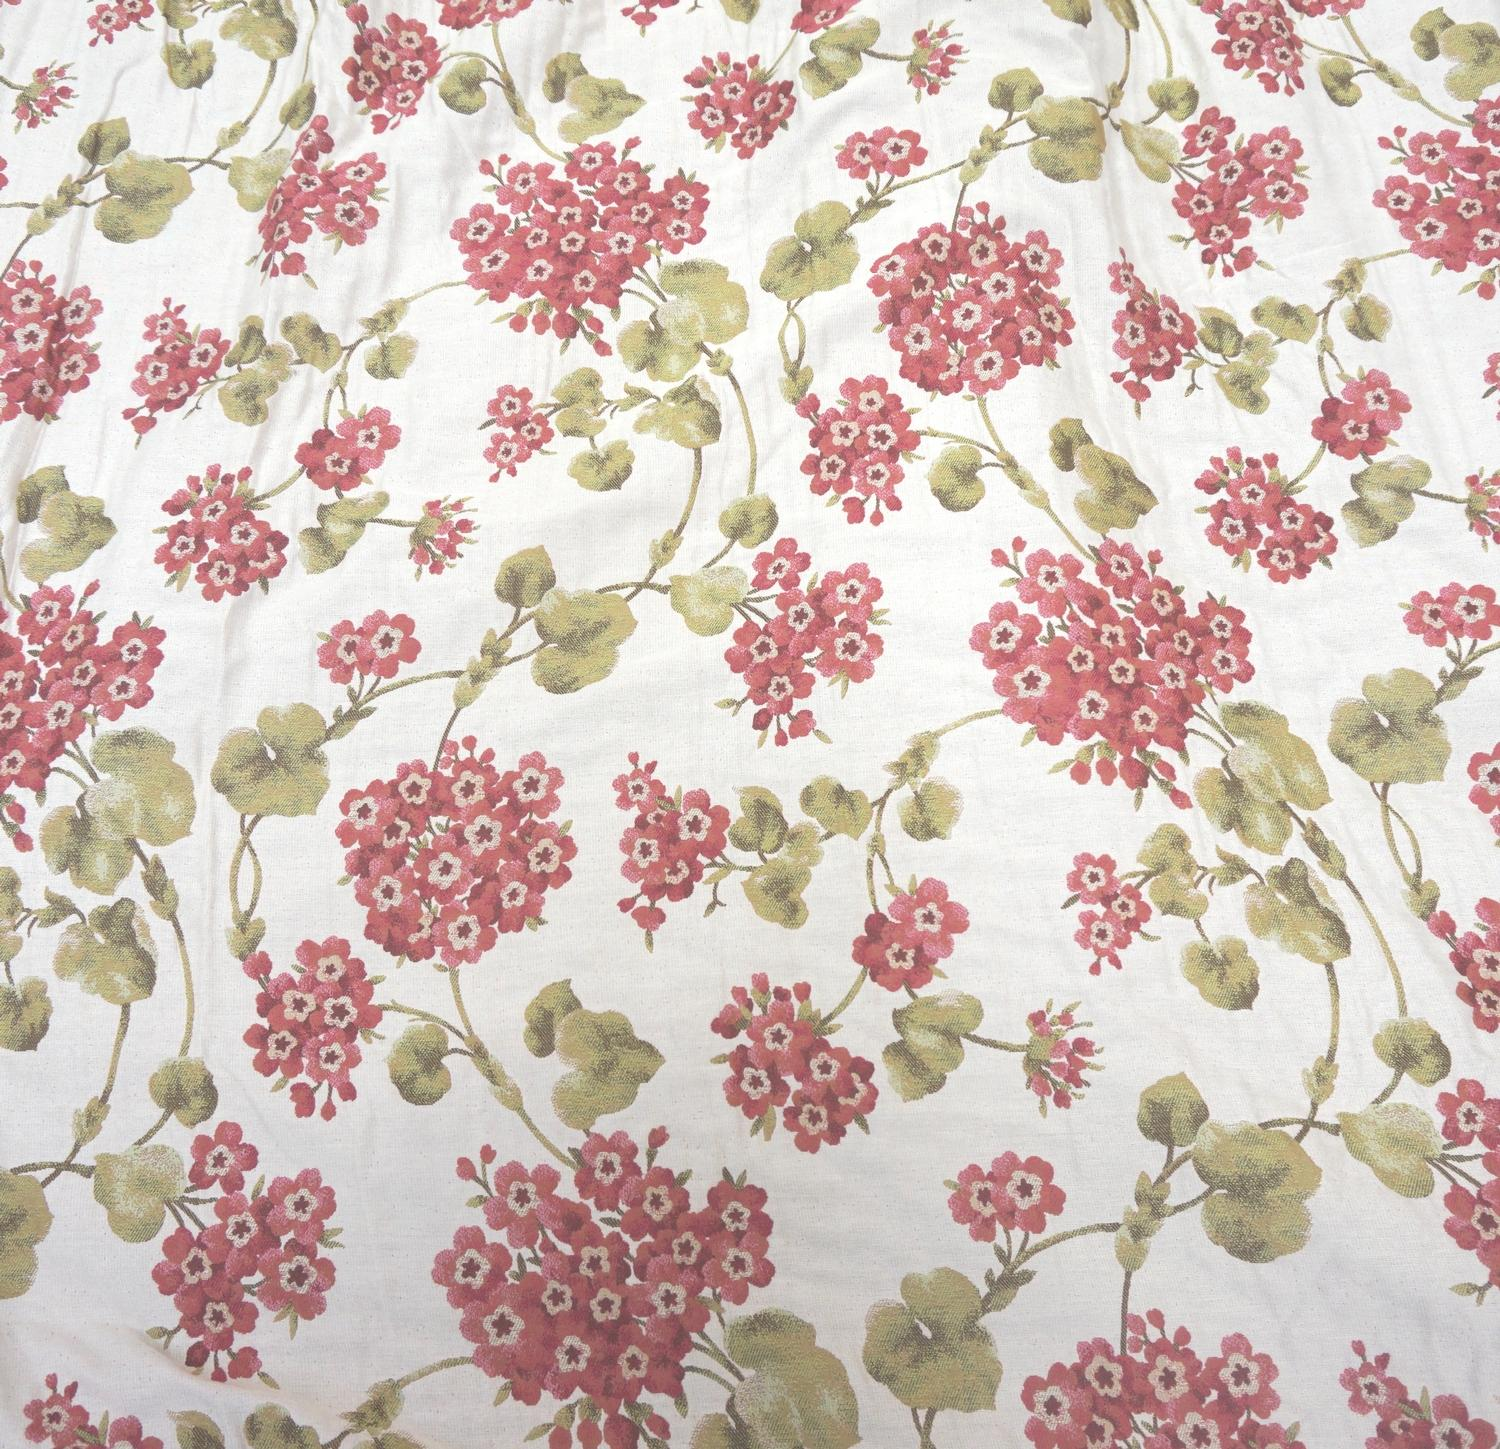 Lot 294 - PAIR OF HEAVY BROCADE CURTAINS with an off white ground with green and red flowers, 295cm long